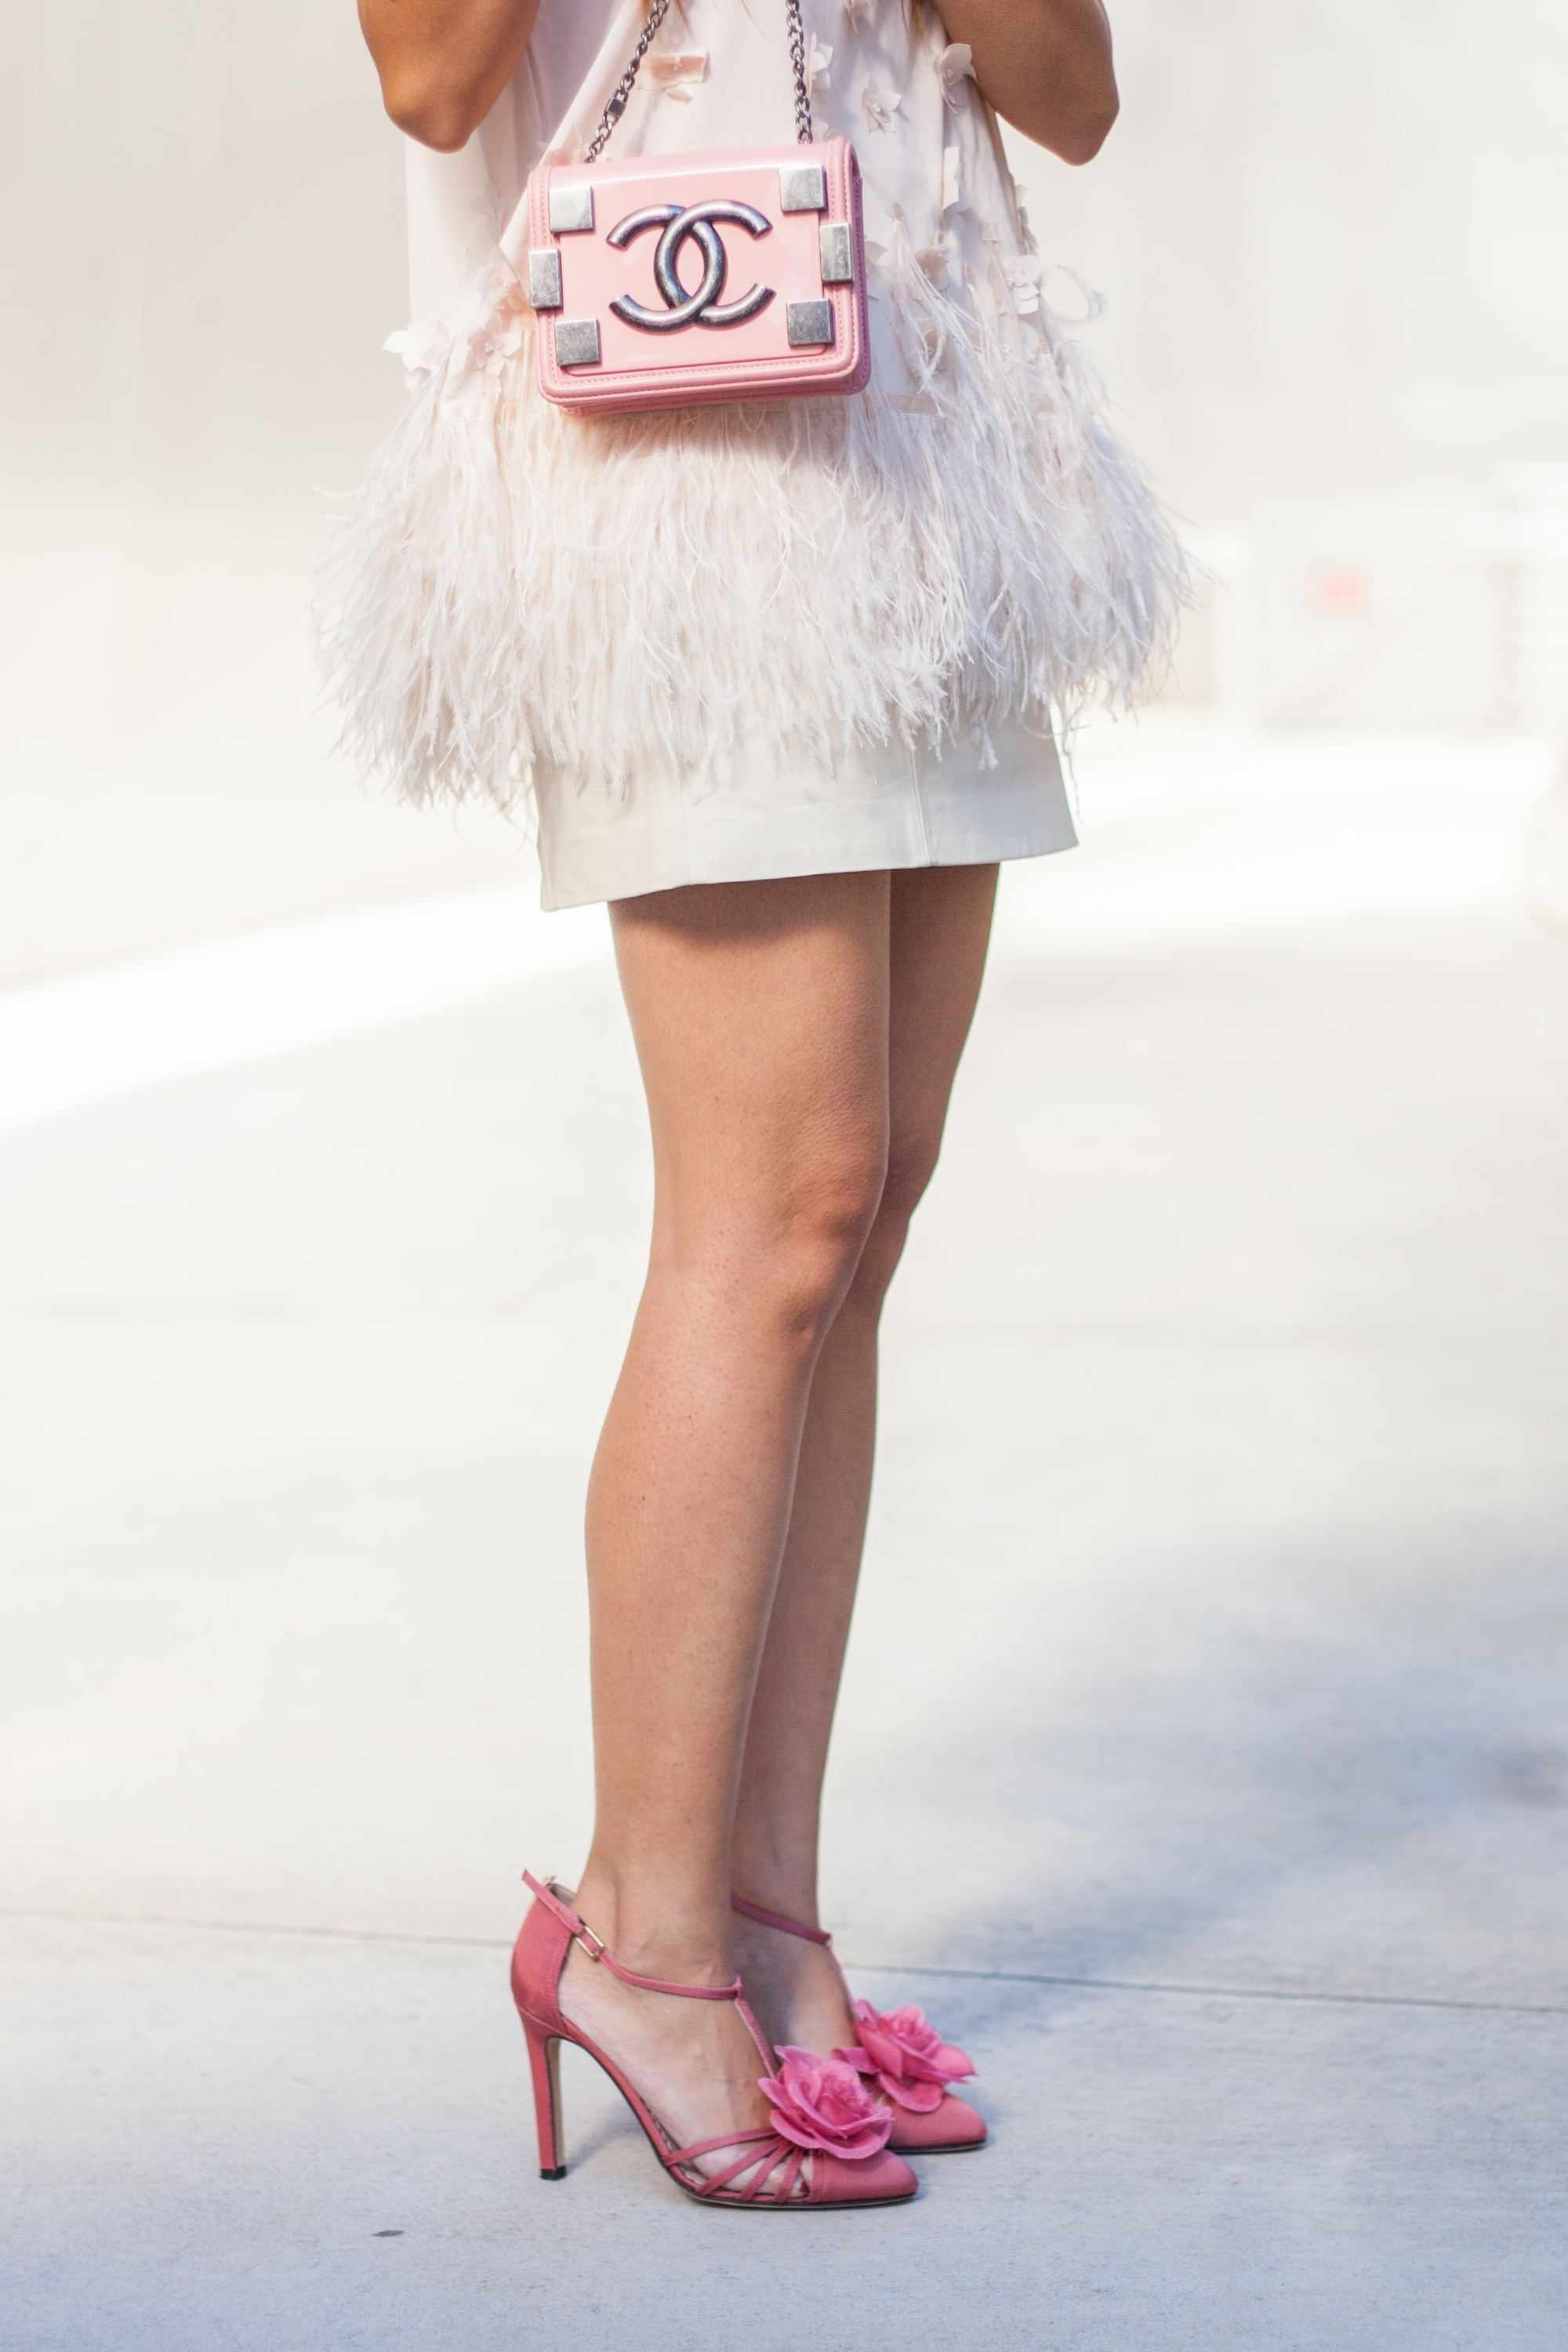 Pink Feathers (9 of 10)